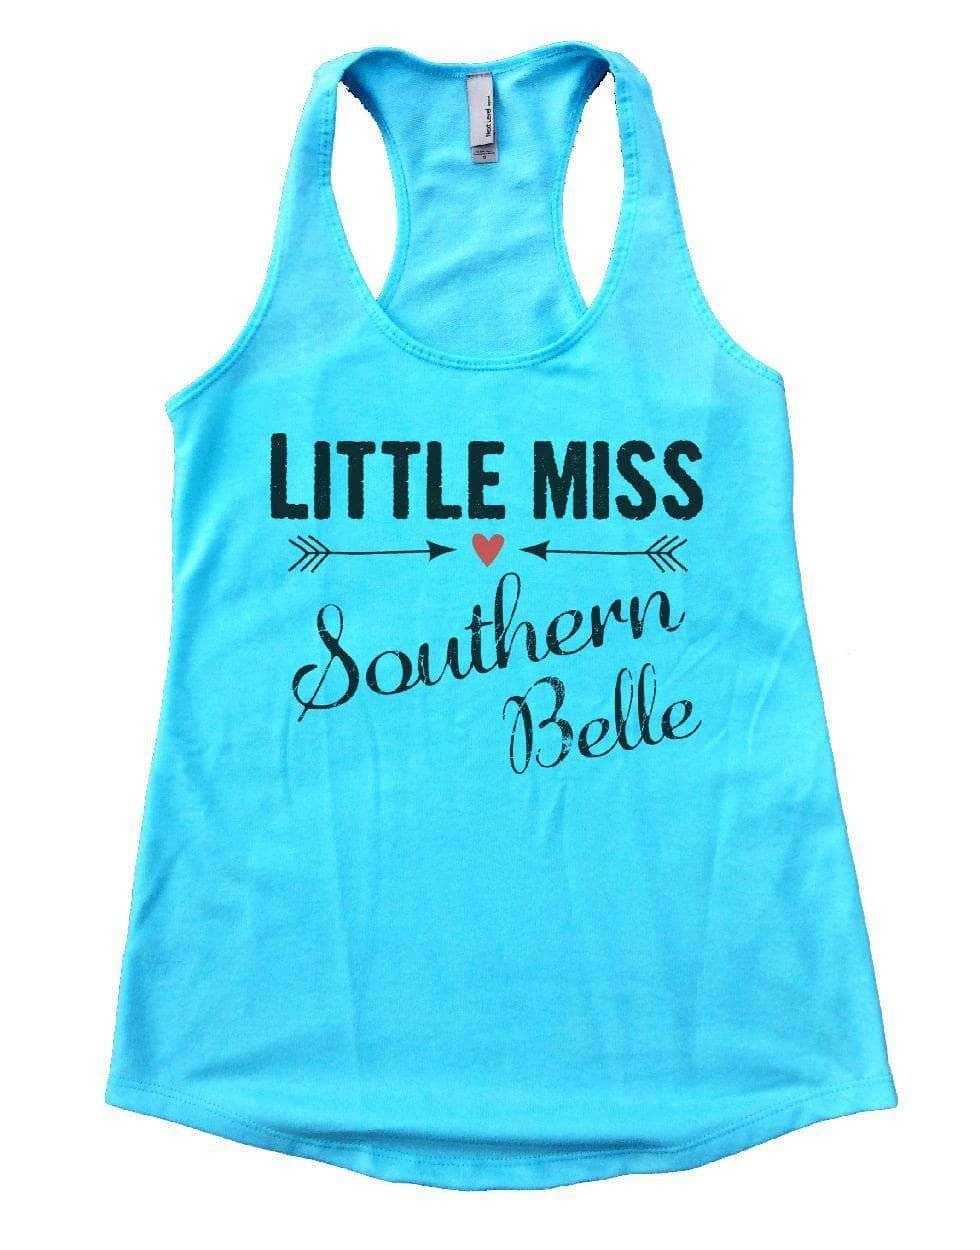 LITTLE MISS Southern Belle Womens Workout Tank Top Small Womens Tank Tops Cancun Blue